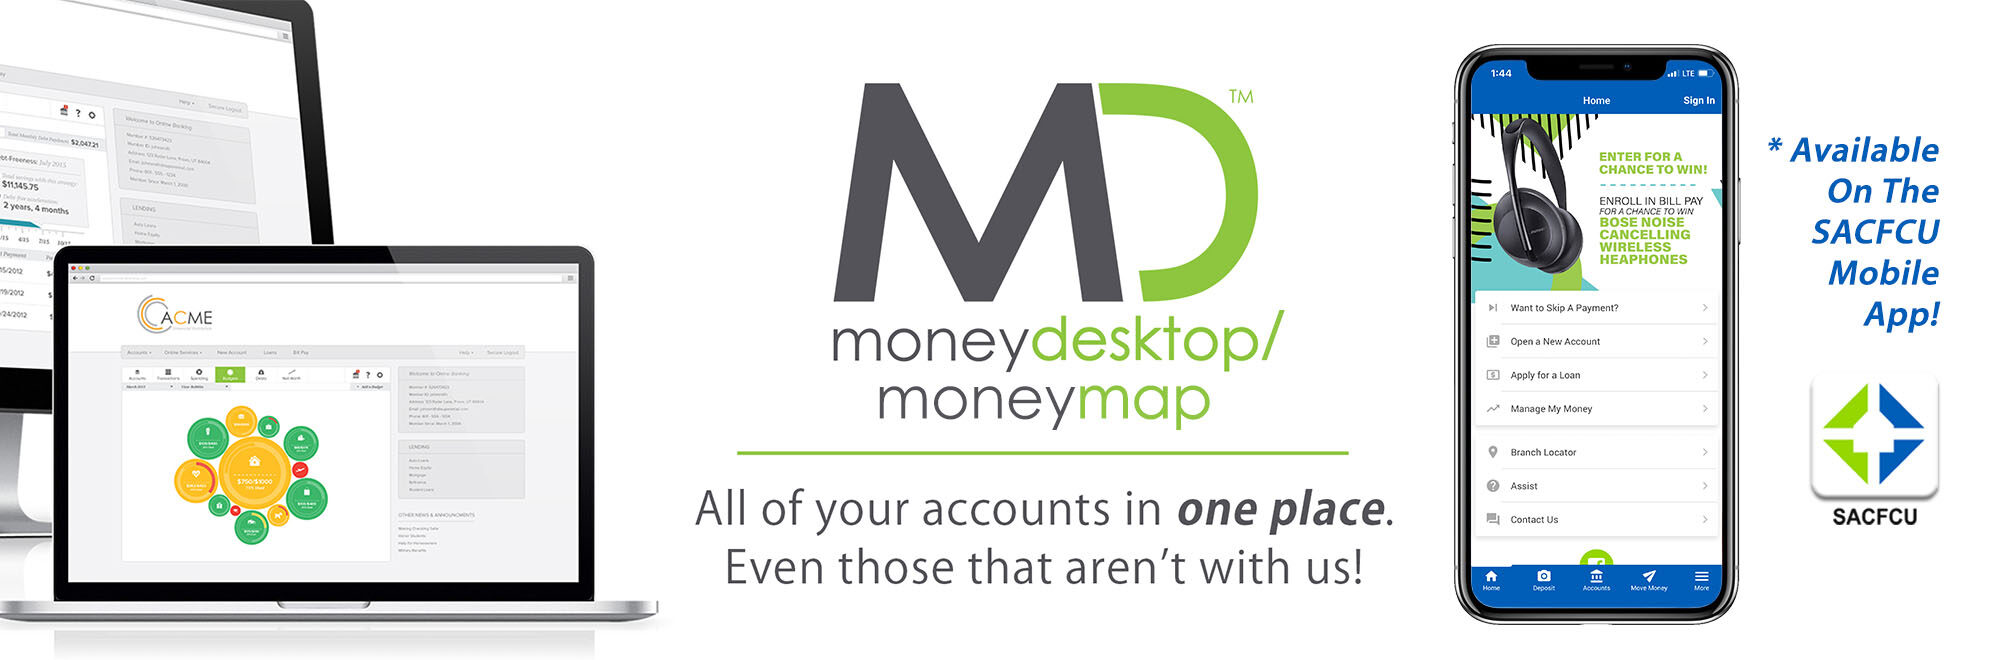 MoneyDesktop gives you access to all of your accounts in one place - even the ones that aren't with us